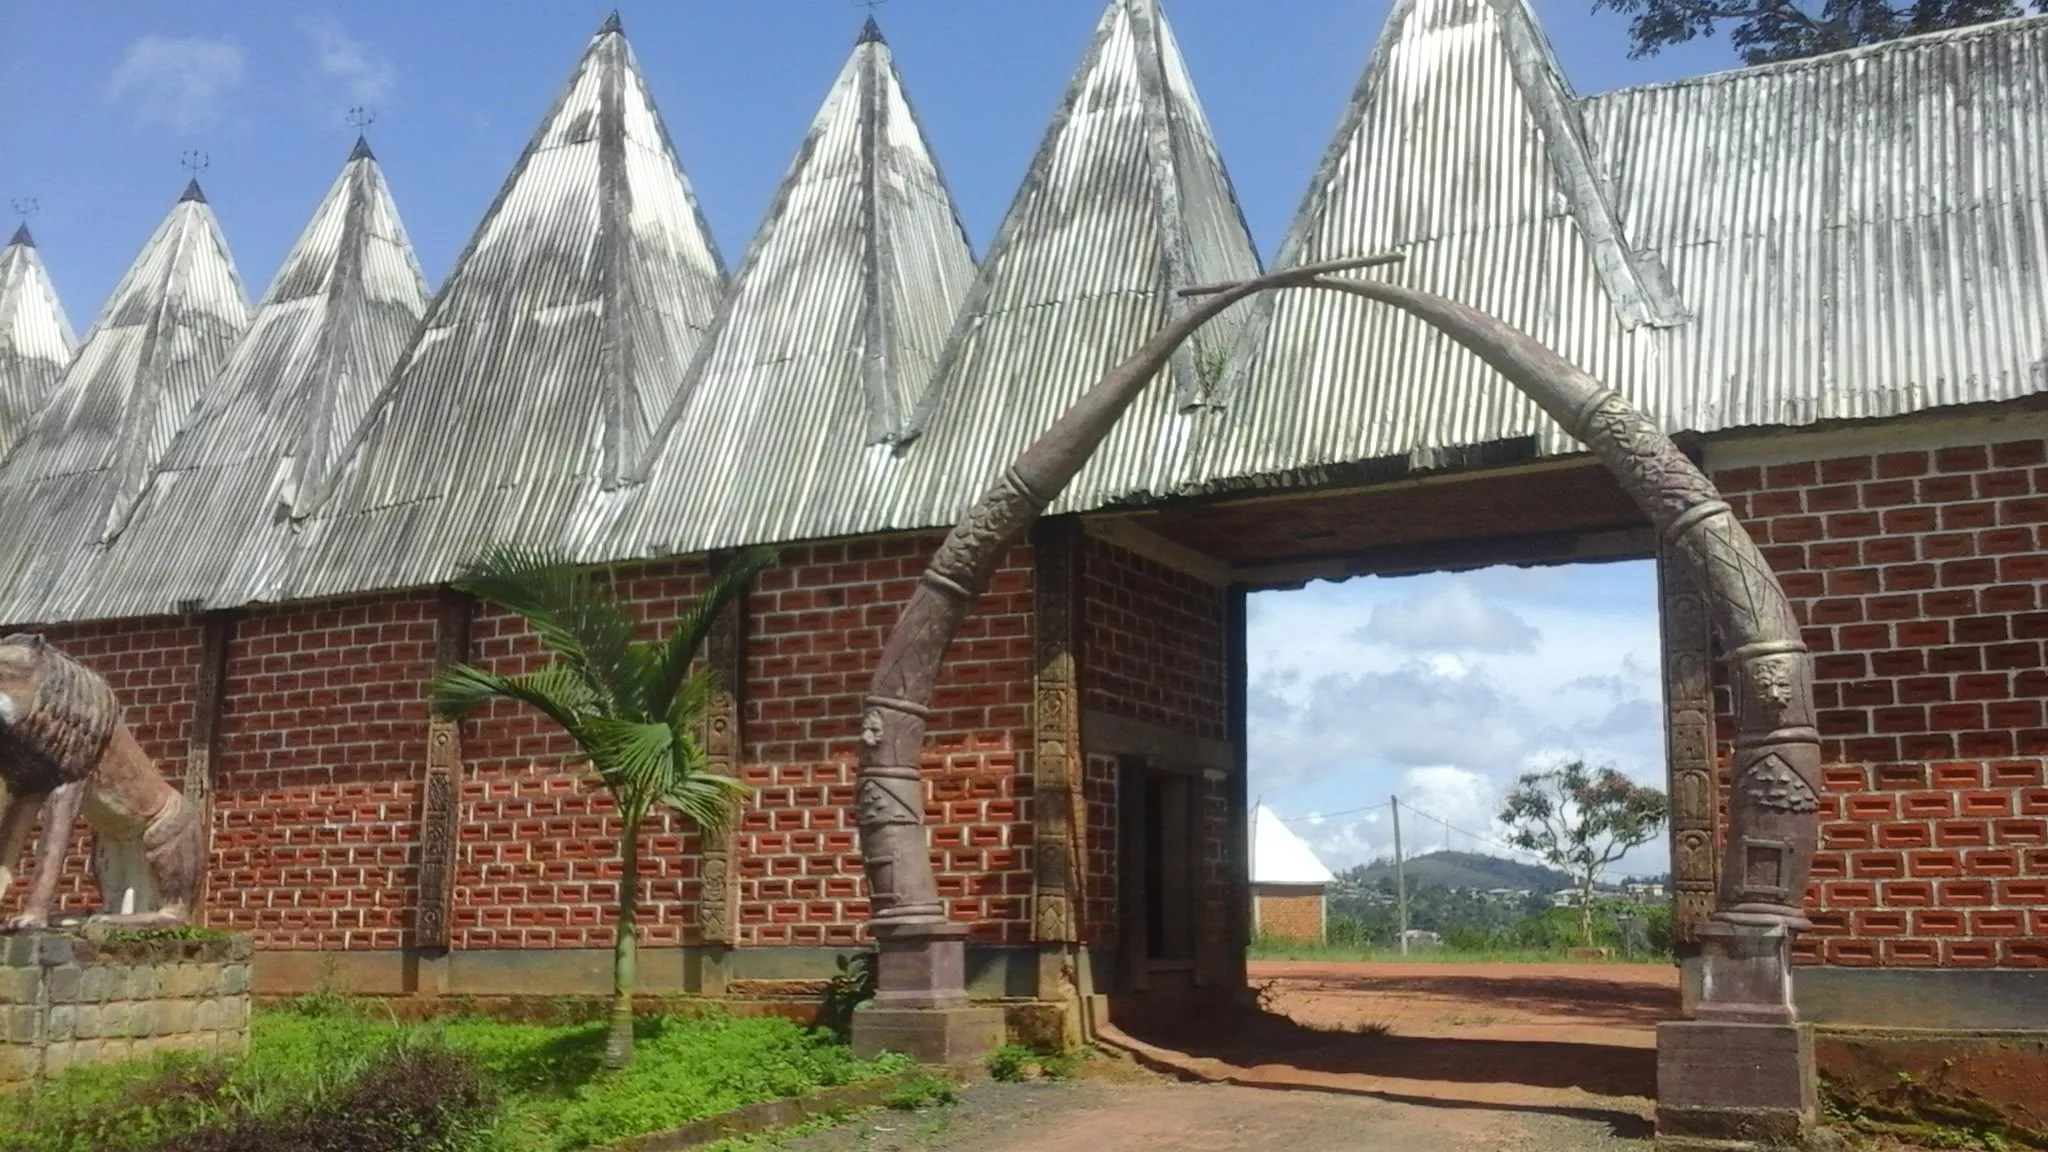 Photo of the entrance to the Bazou Chieftaincy, home of the Bamileke people in Bandounga, Cameroon.